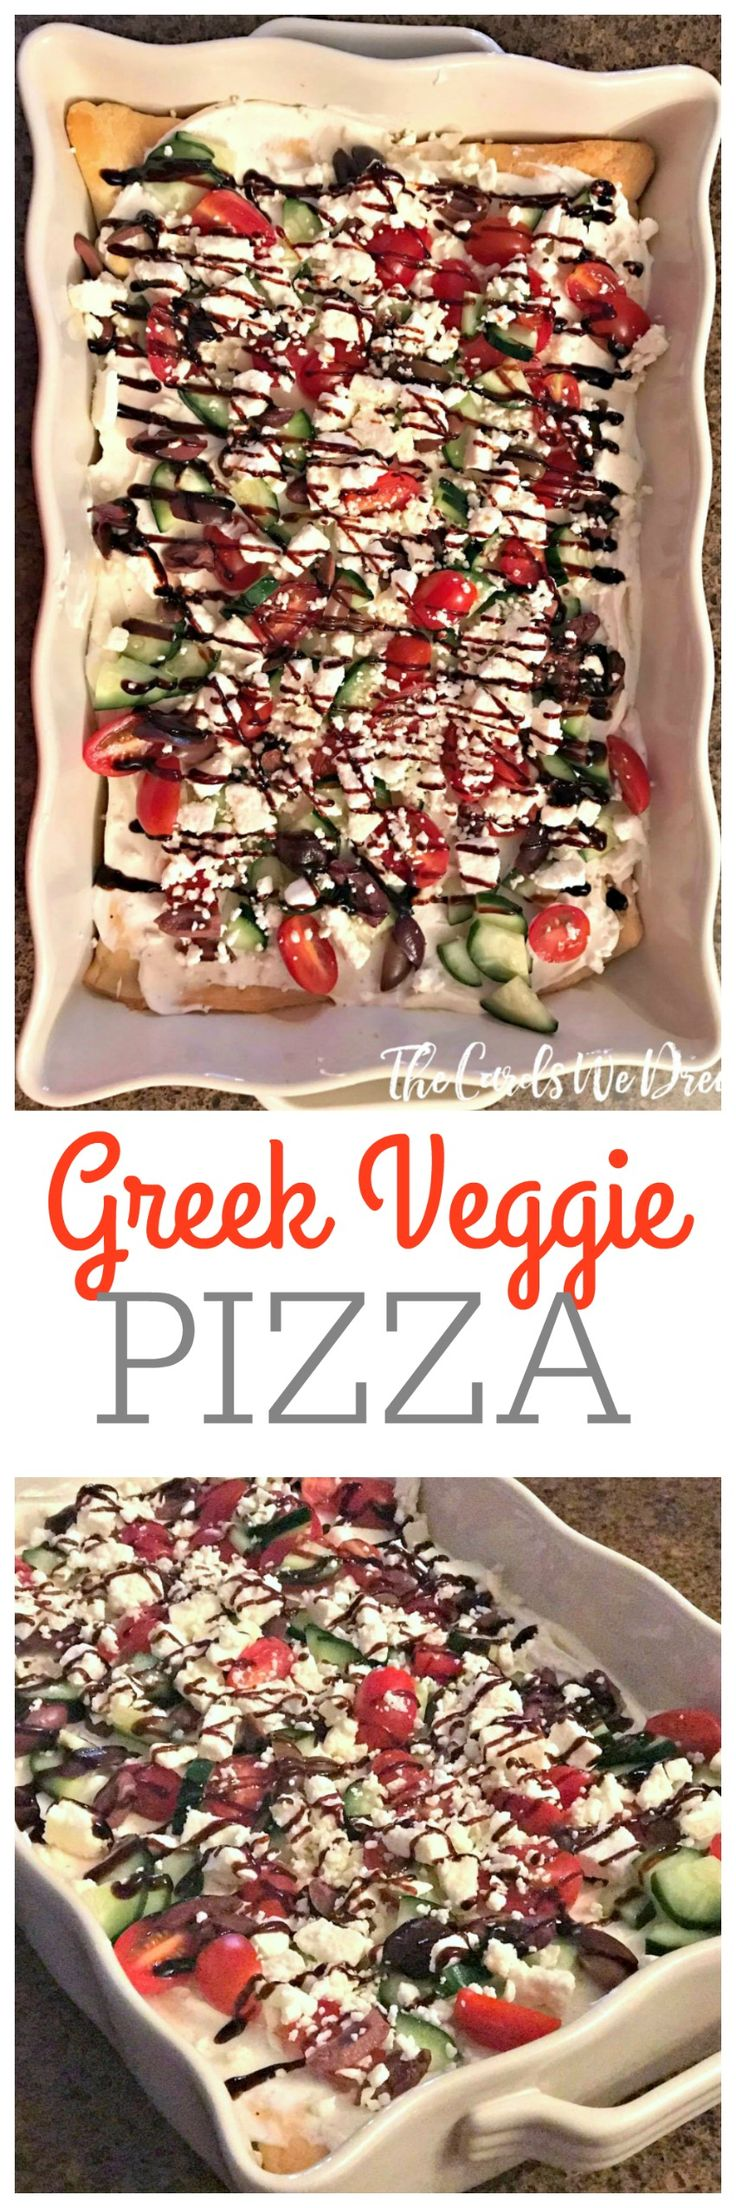 Need an easy appetizer idea? This Greek Veggie Pizza is full of flavor with loads of fresh veggies on top! Serve cold and wow your guests.